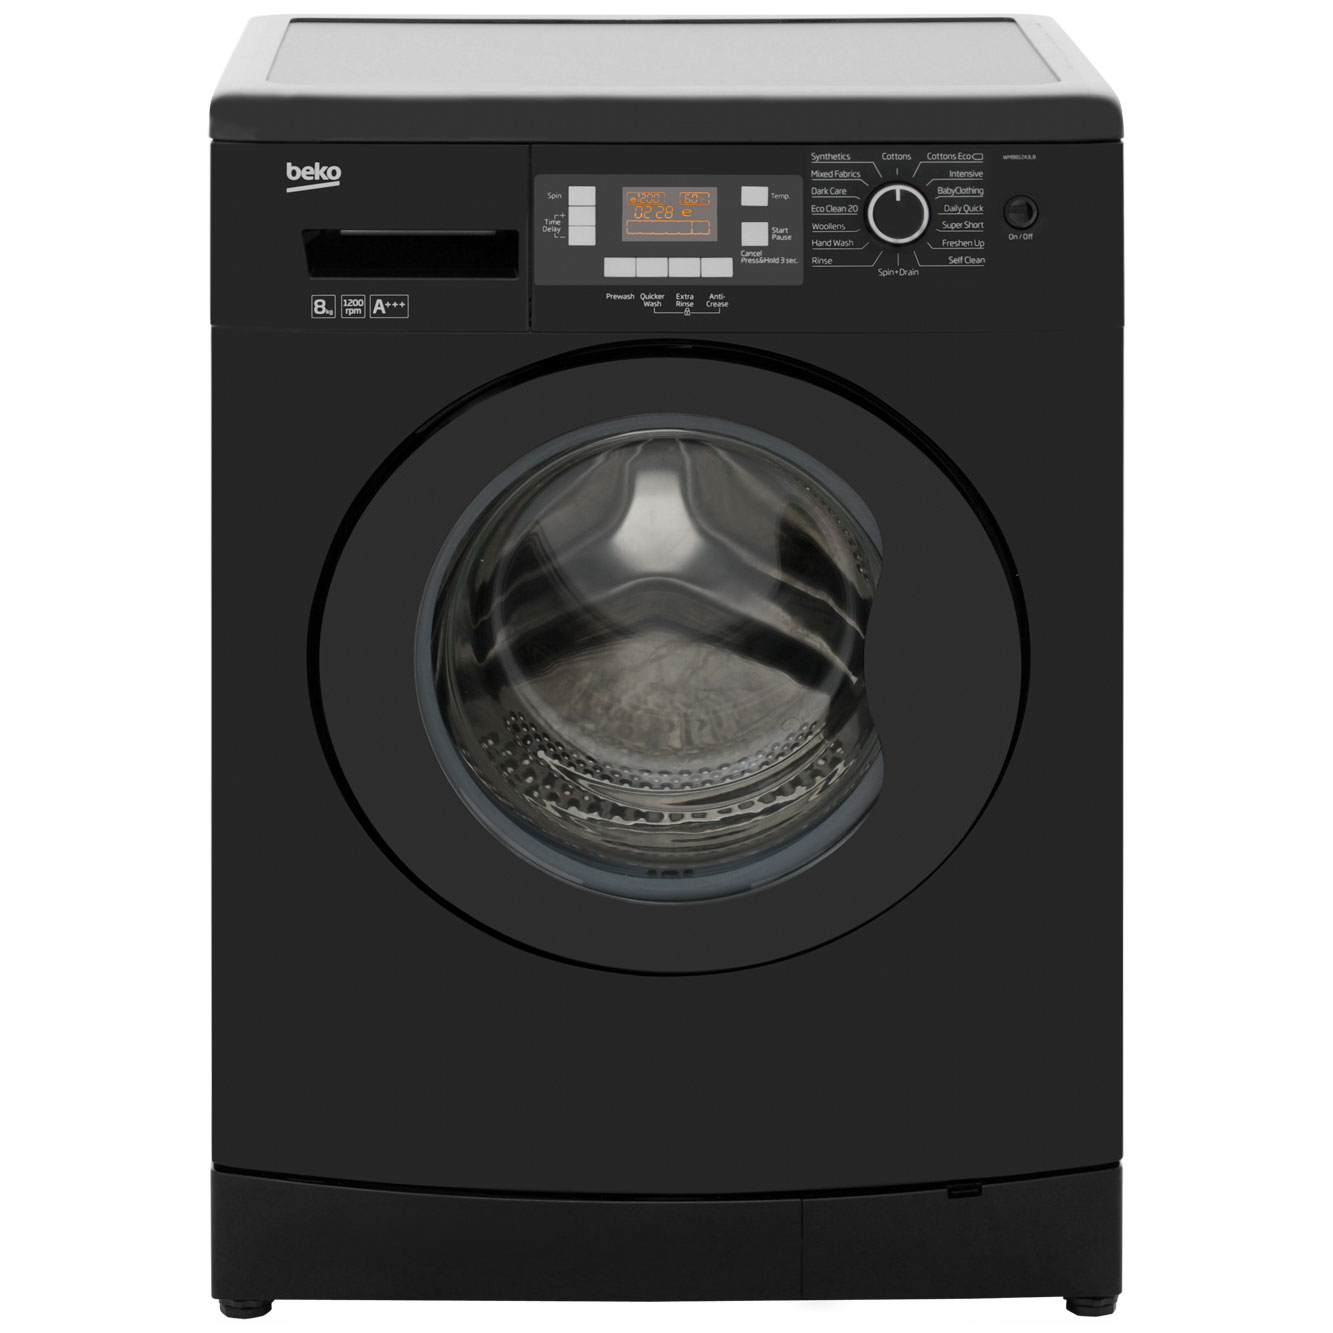 Beko WMB81243LB 8Kg Washing Machine with 1200 rpm - Black